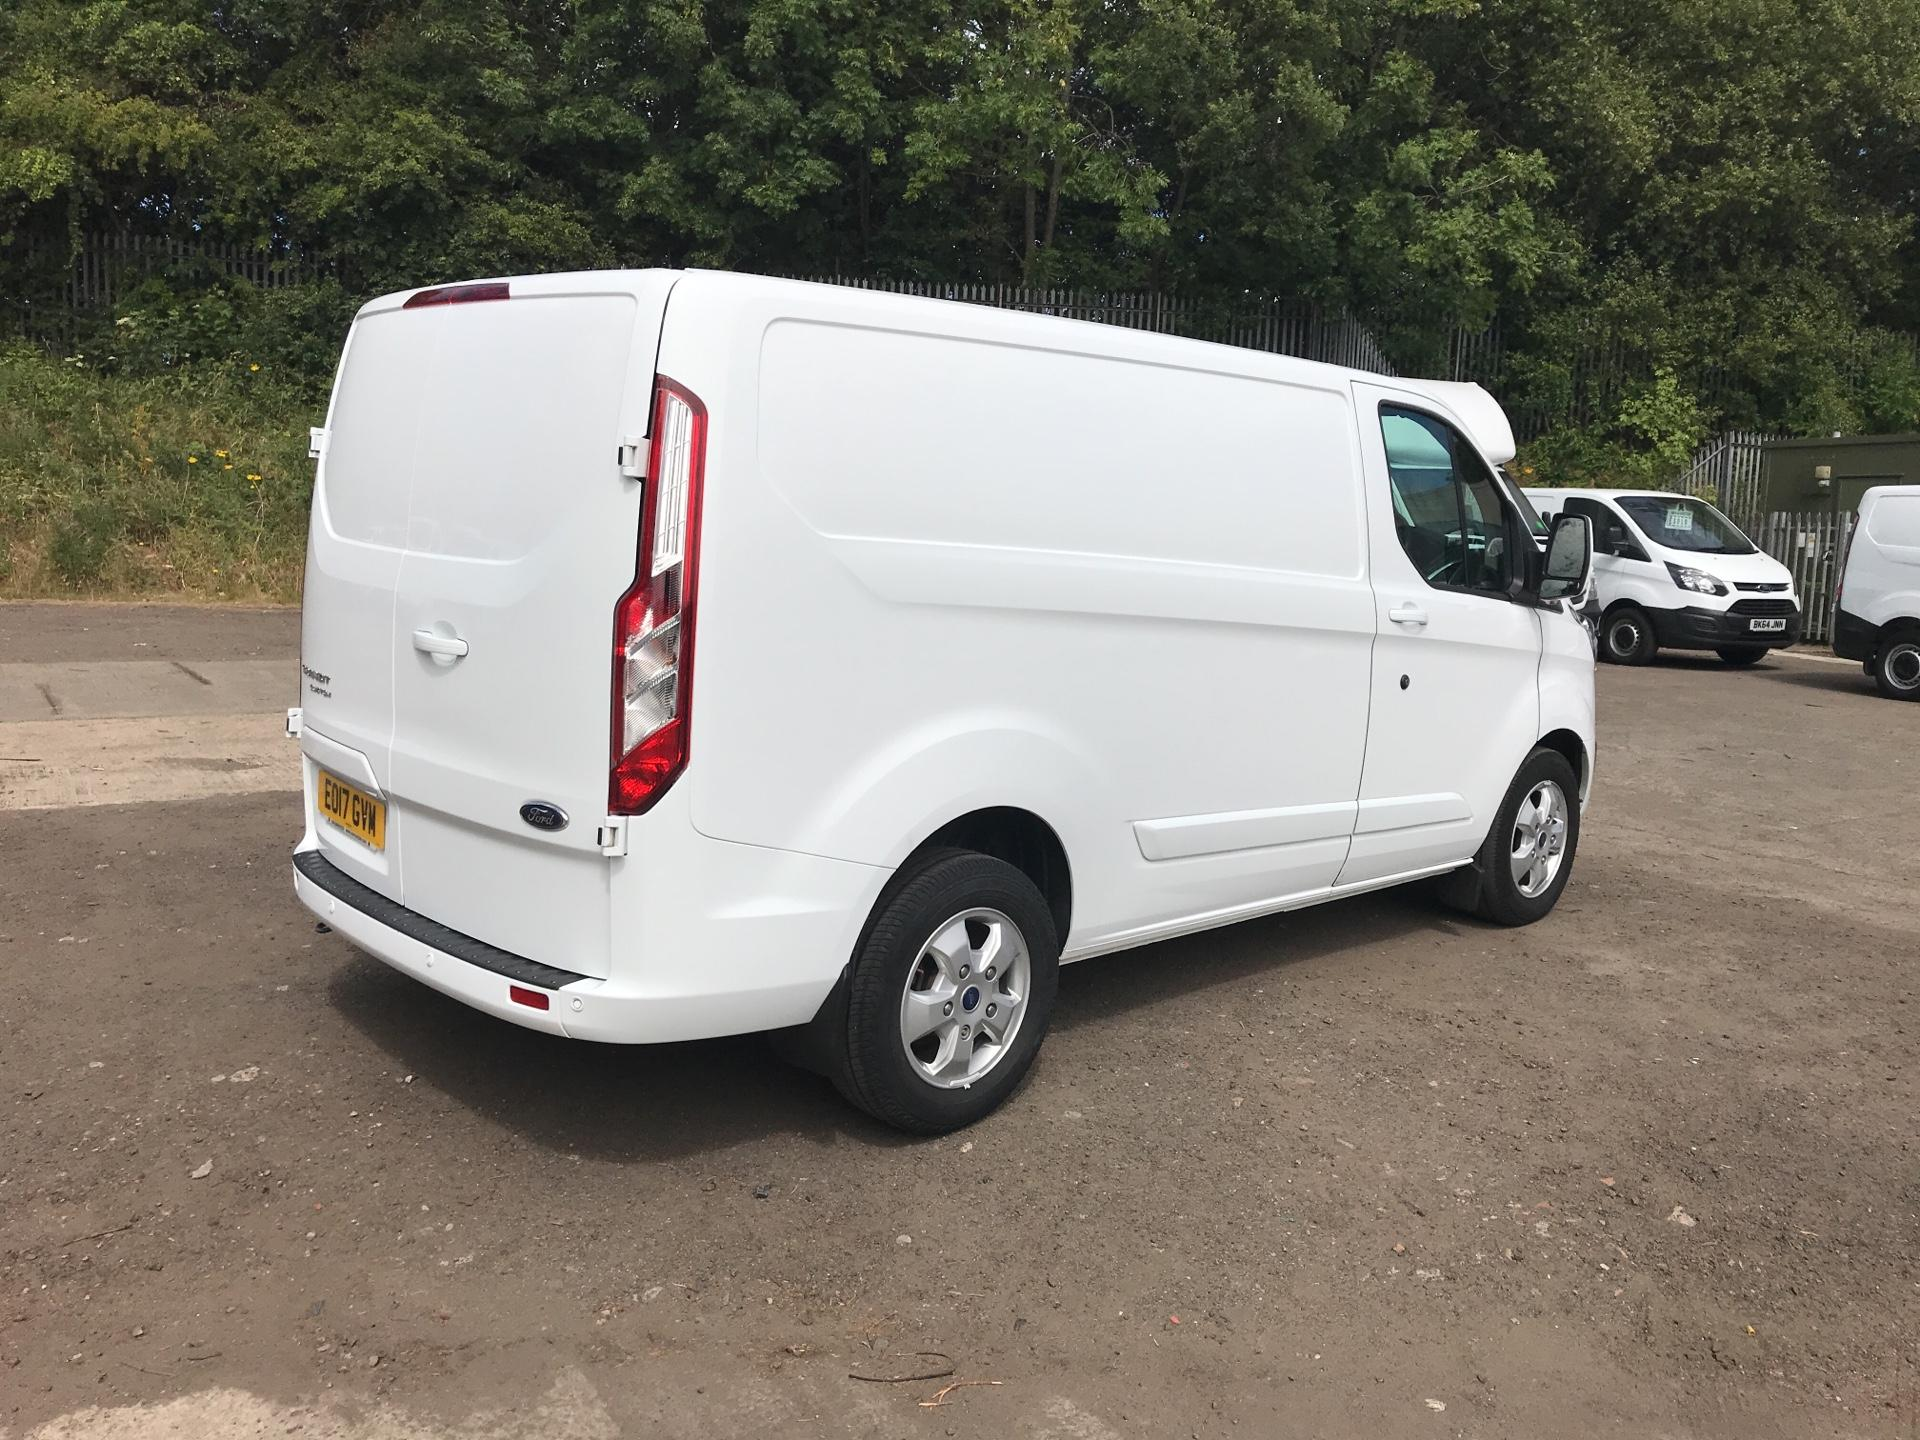 2017 Ford Transit Custom 270 L1 DIESEL FWD 2.0 TDCI 130PS LOW ROOF LIMITED EURO 6 (EO17GVM) Thumbnail 3